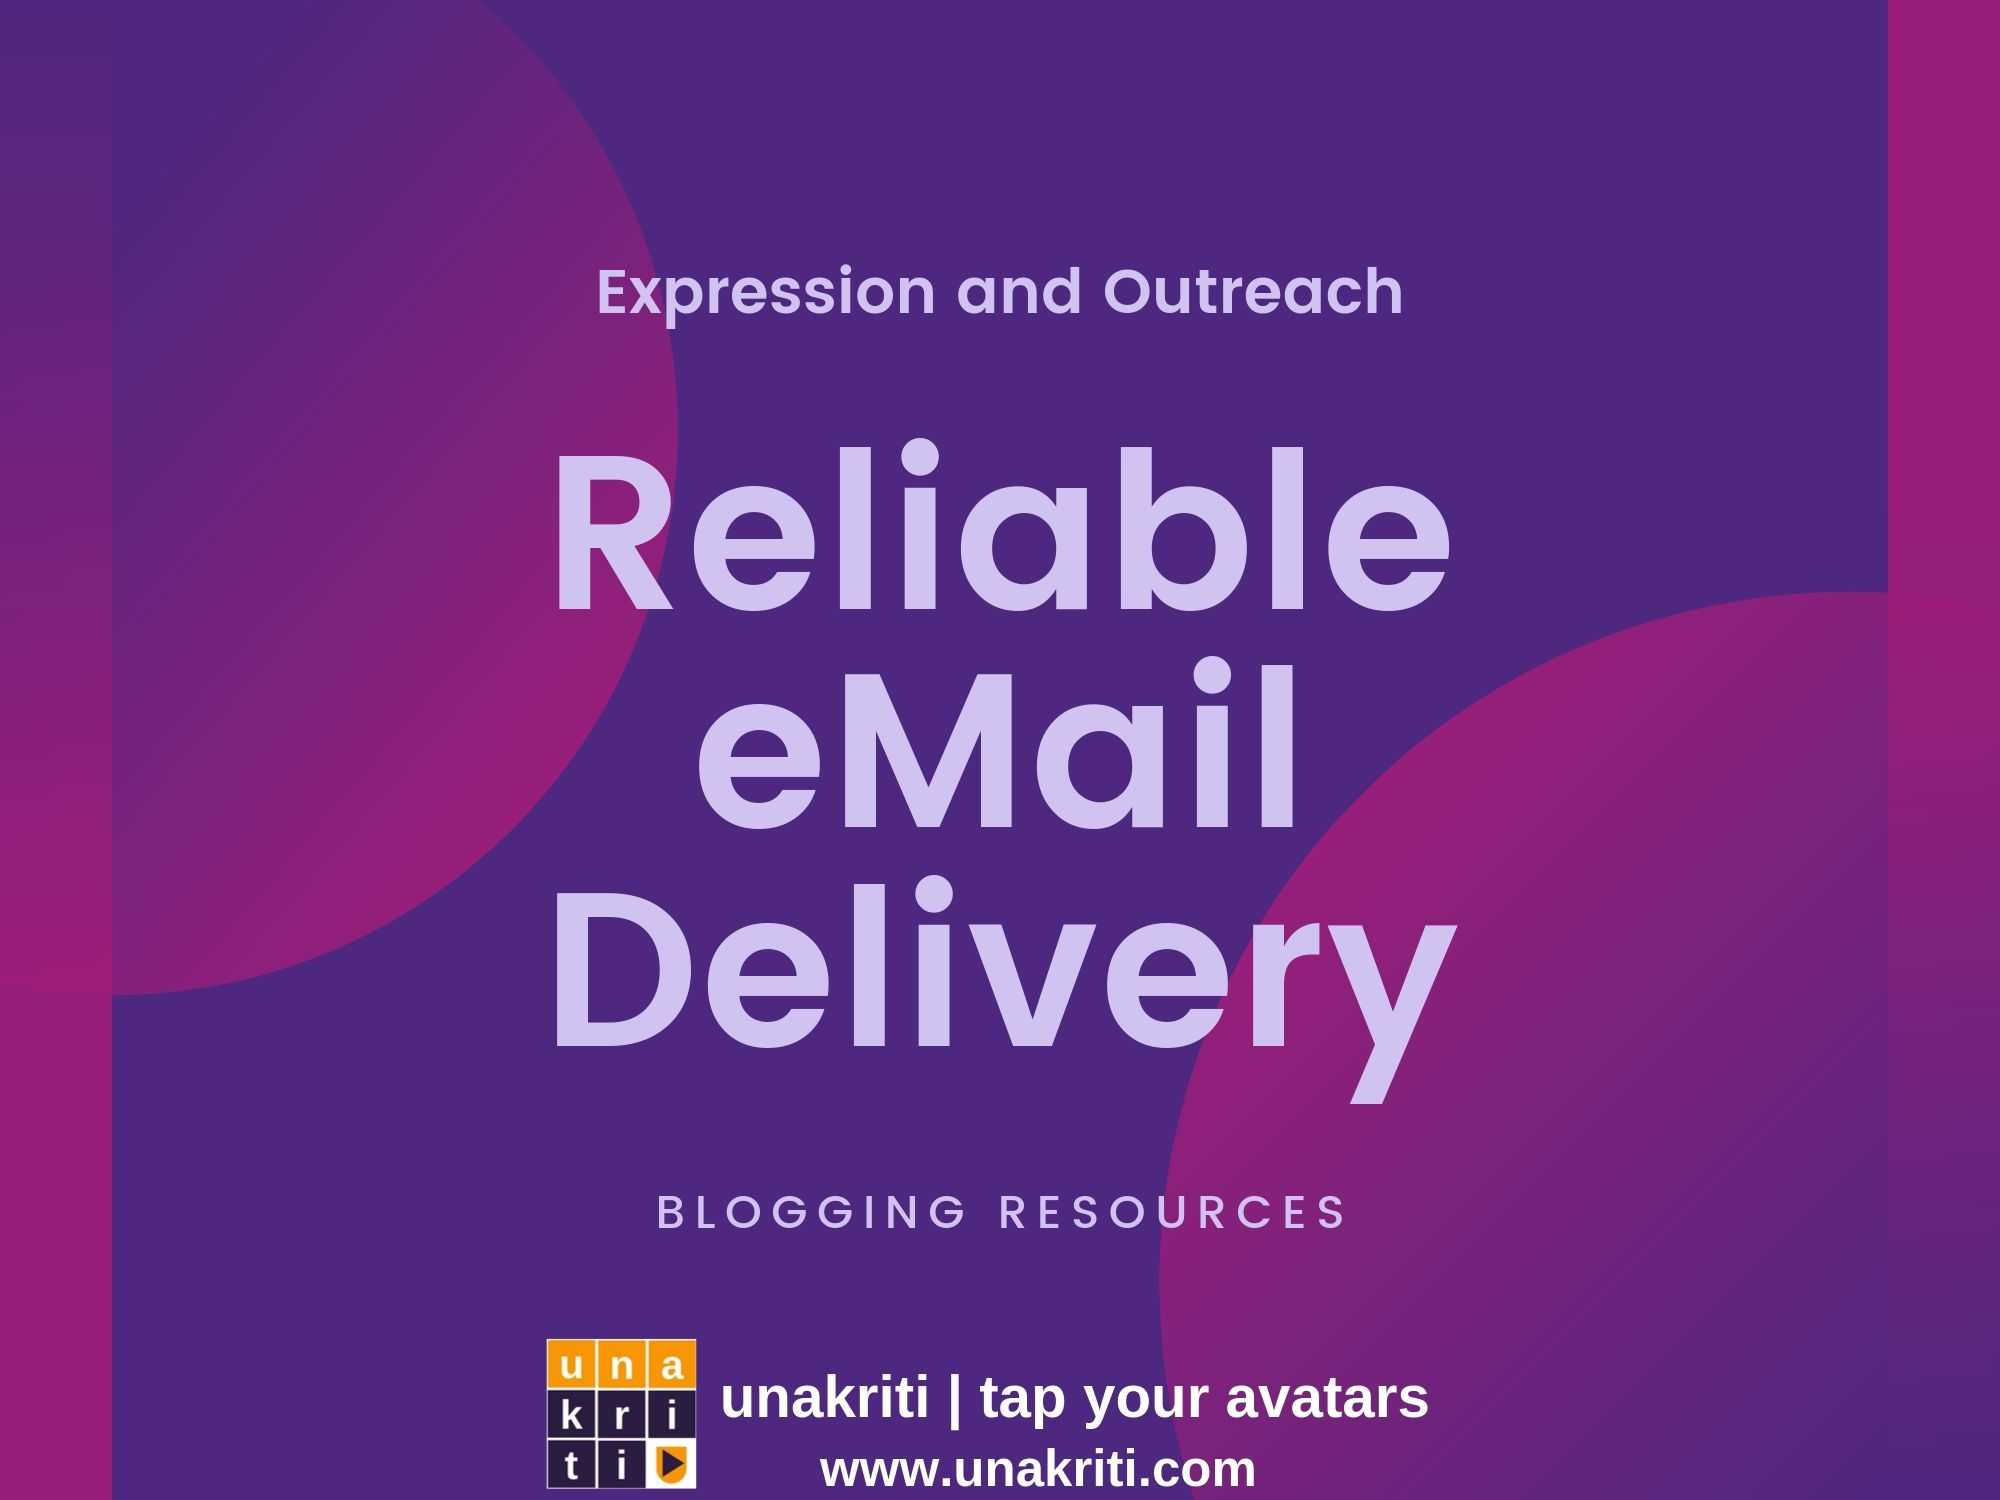 How to ensure reliable email delivery?